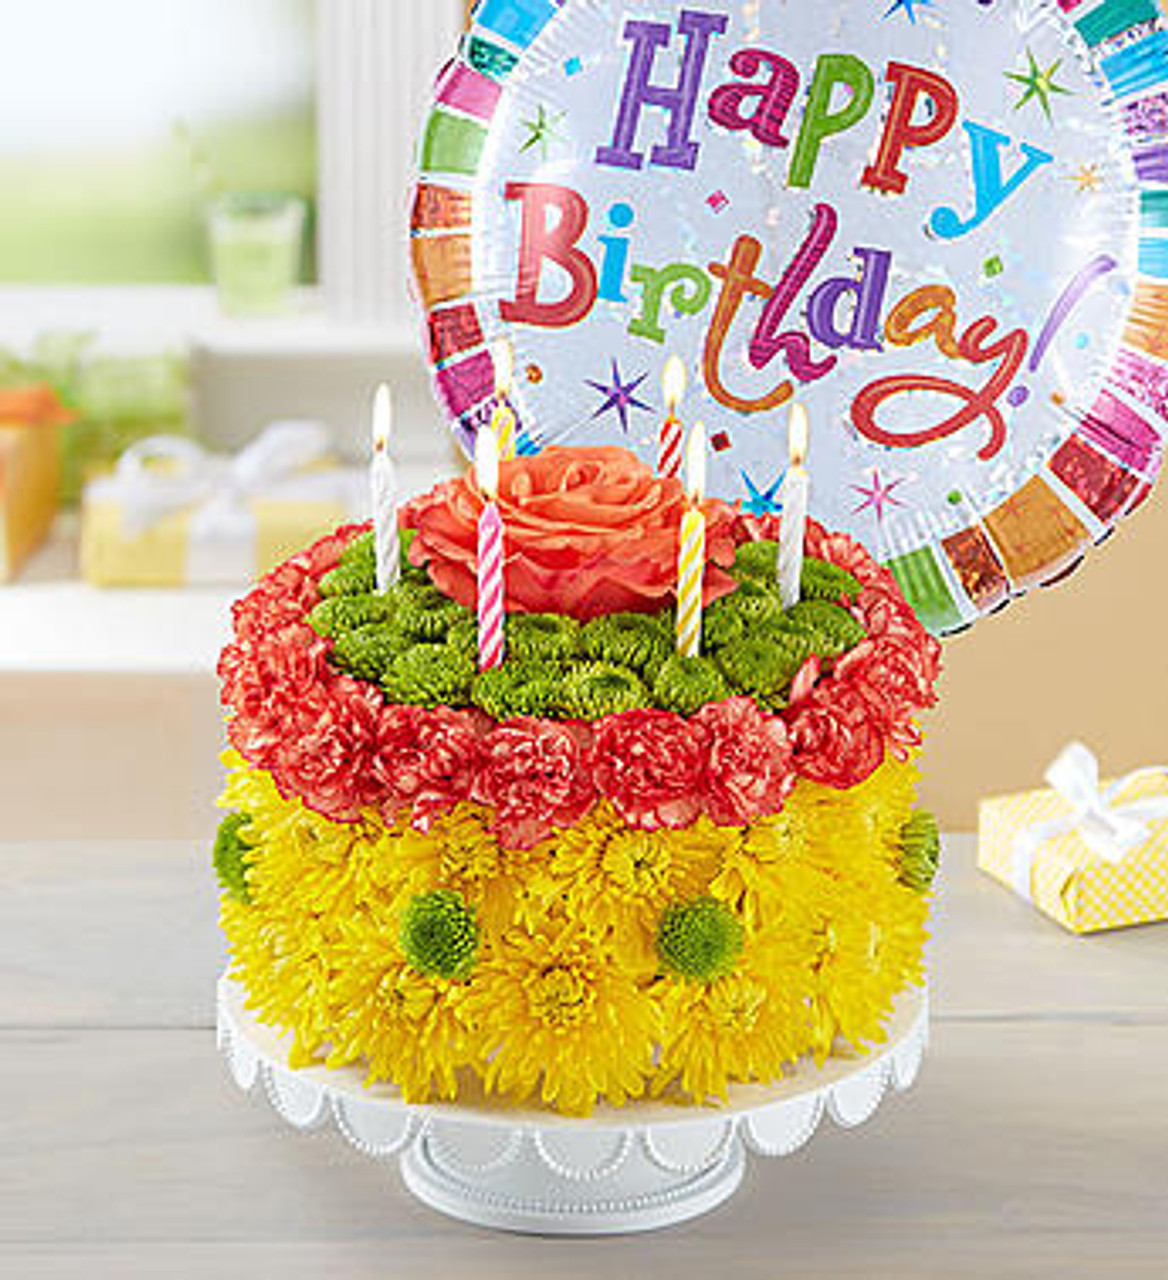 Peachy Birthday Wishes Flower Cake Yellow Conroys Flowers Funny Birthday Cards Online Alyptdamsfinfo